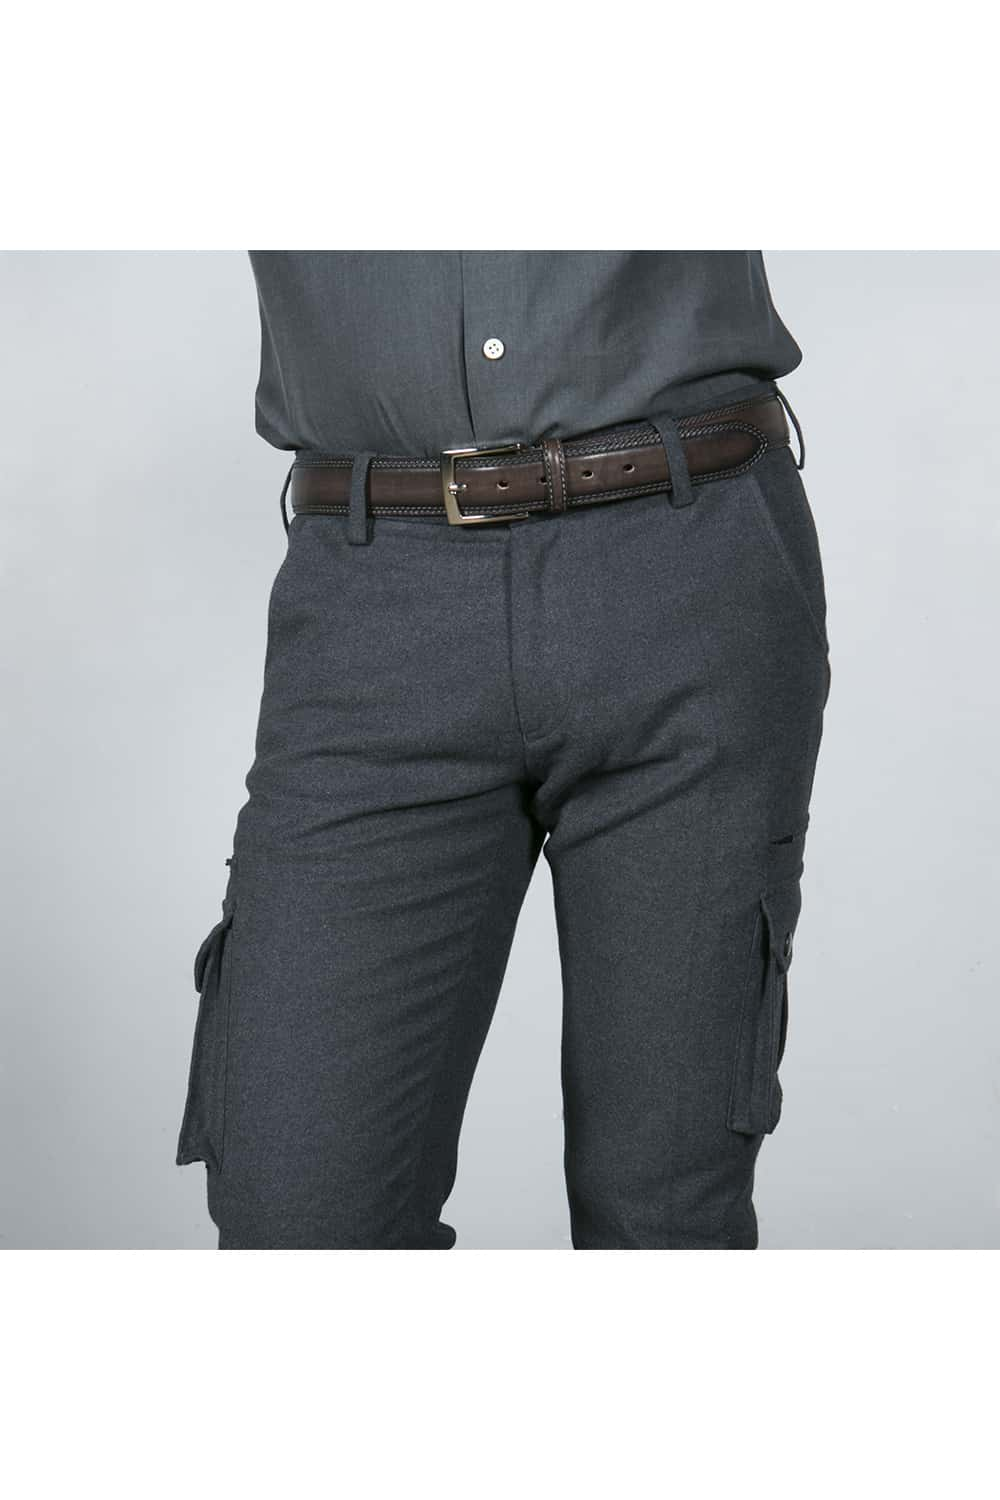 pantalon chino stretch poches italiennes